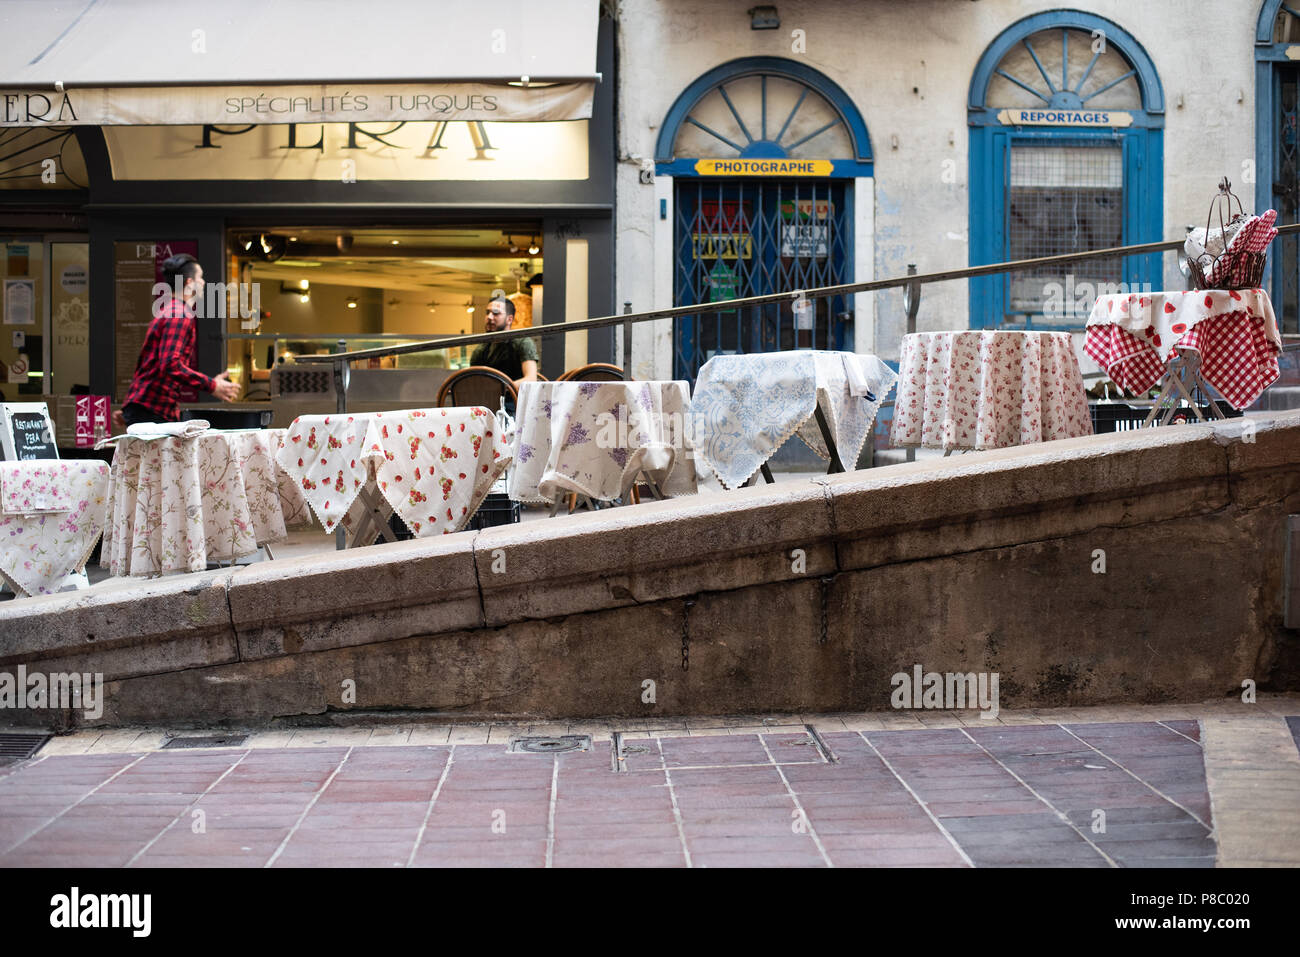 Decorative tablecloths on tables in Nice Old Town - Stock Image